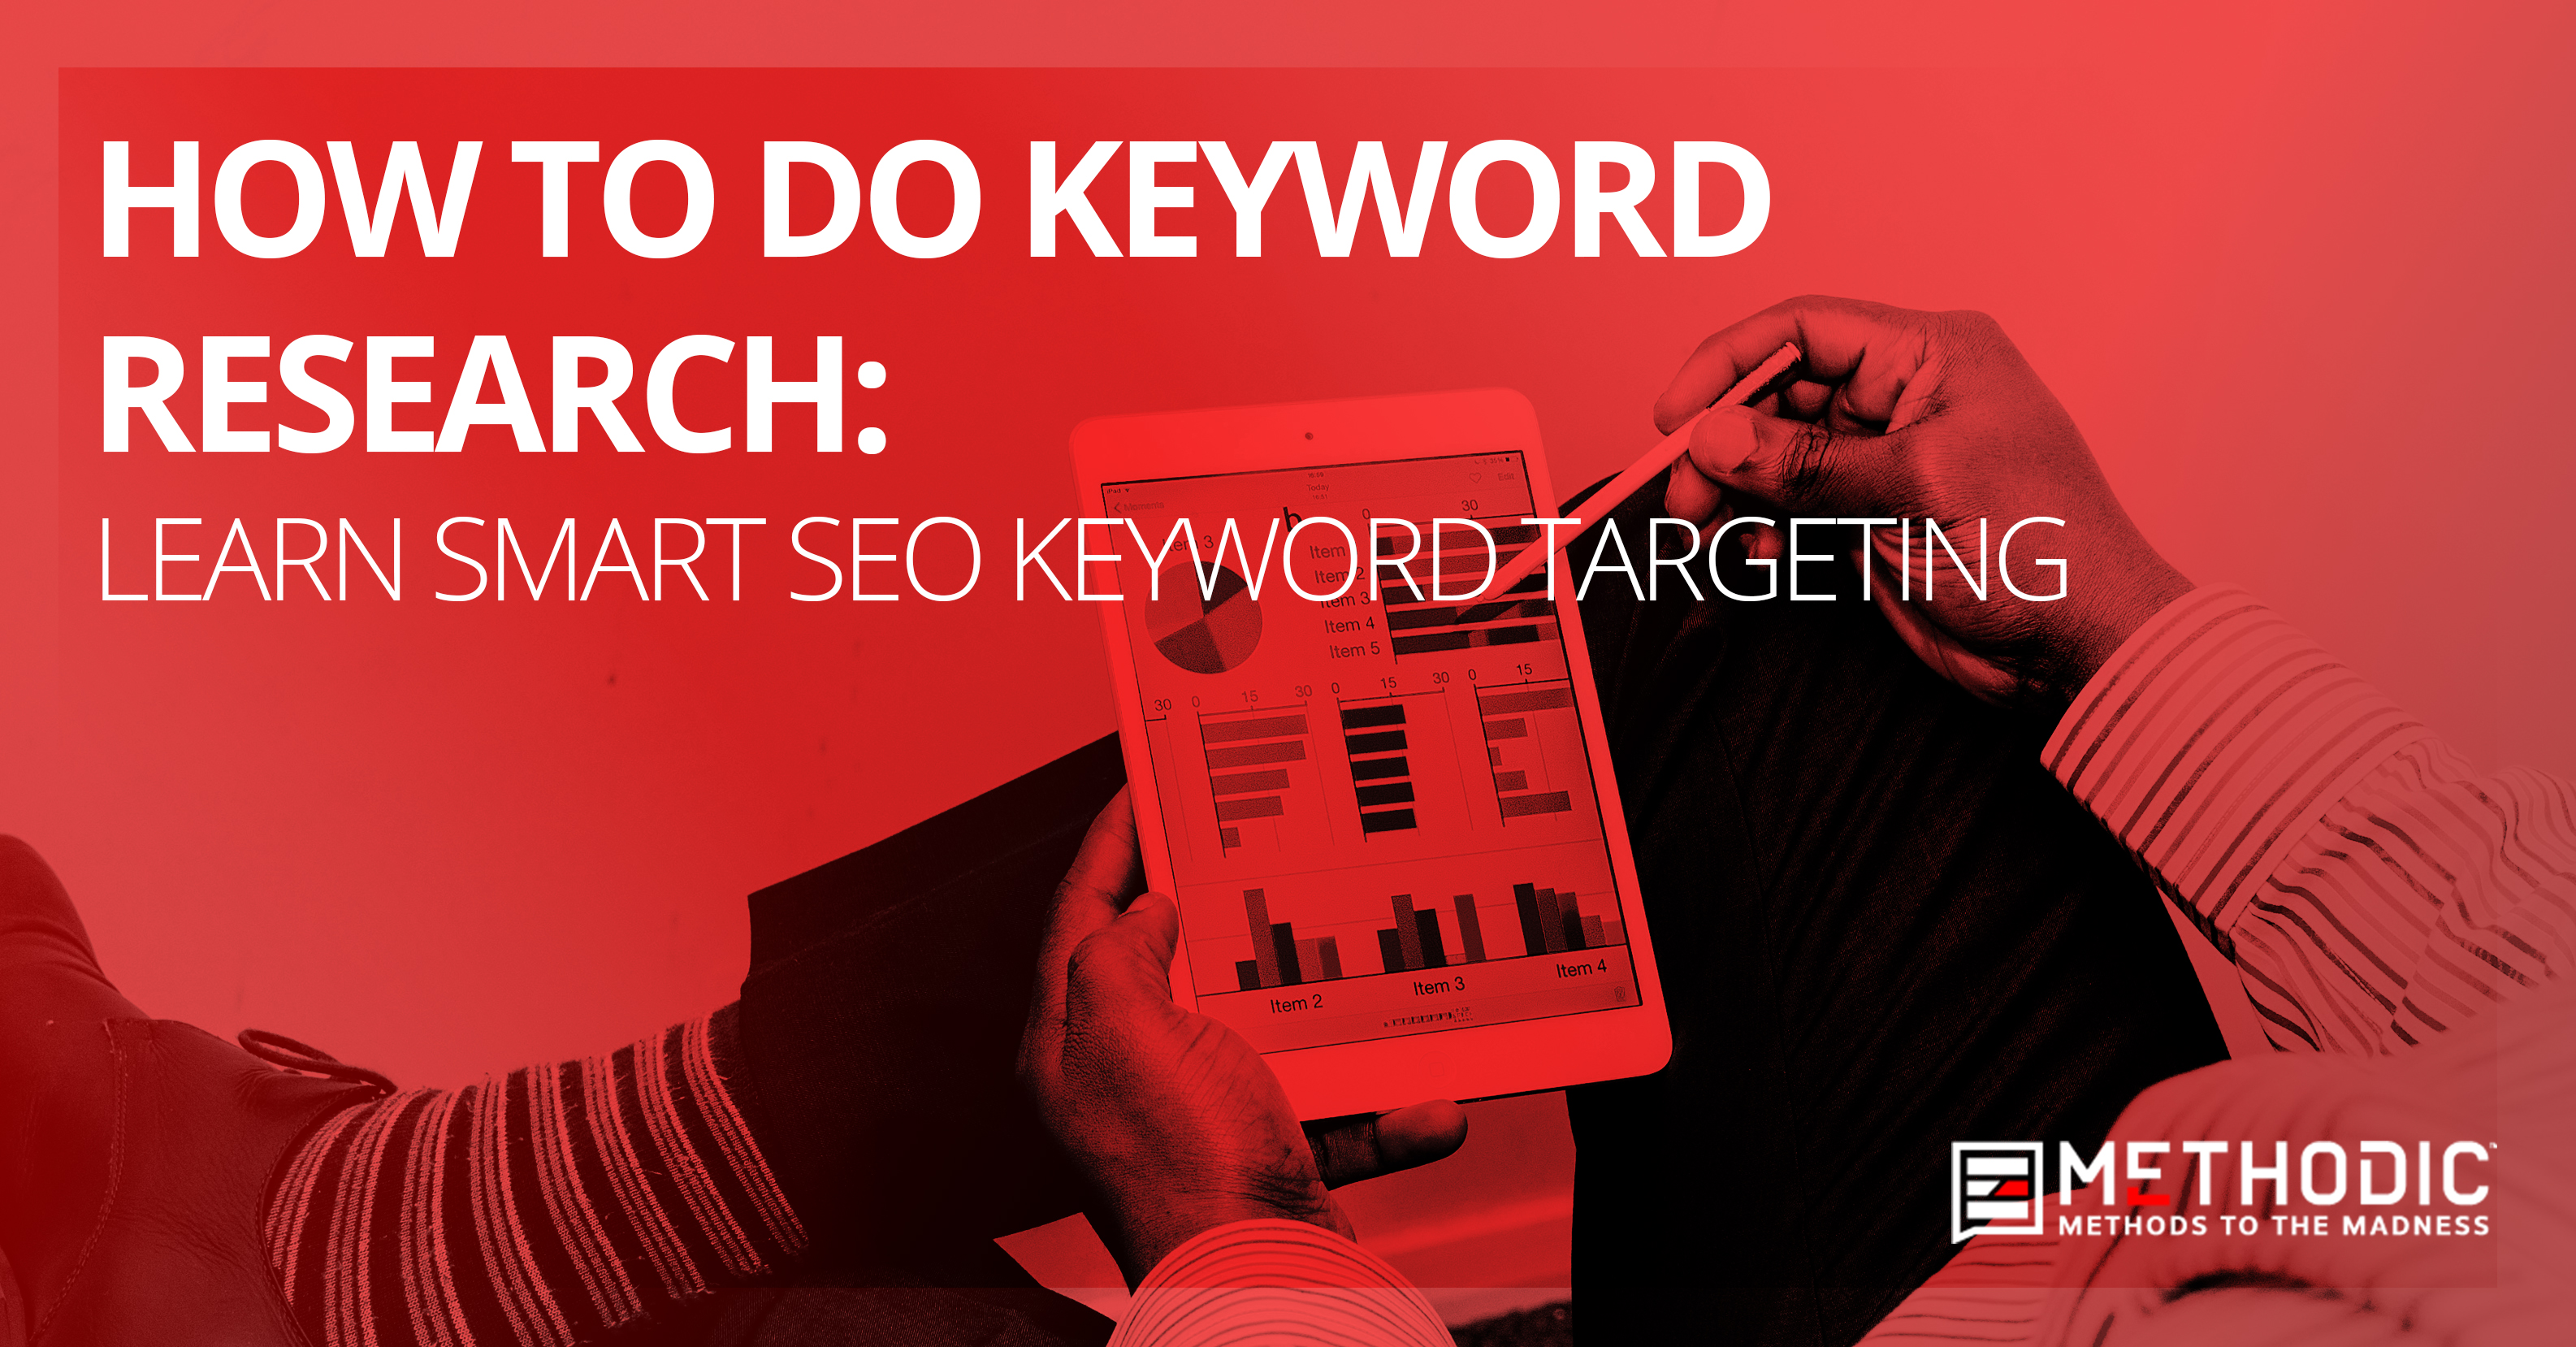 How to do Keyword Research: Learn Smart SEO Keyword Targeting